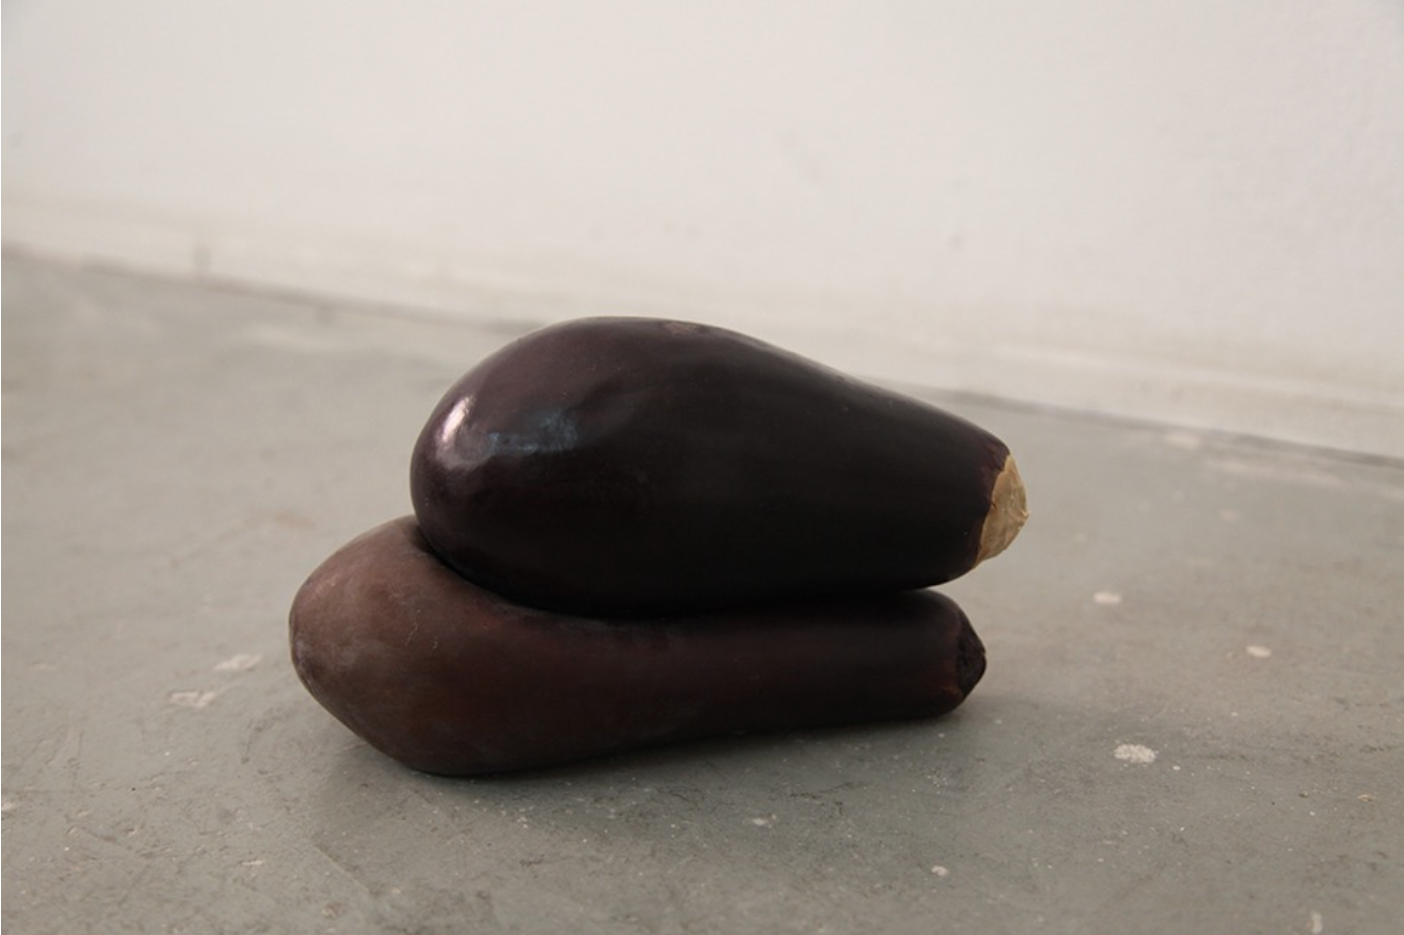 variations on the hydration and dehydration of the aubergines